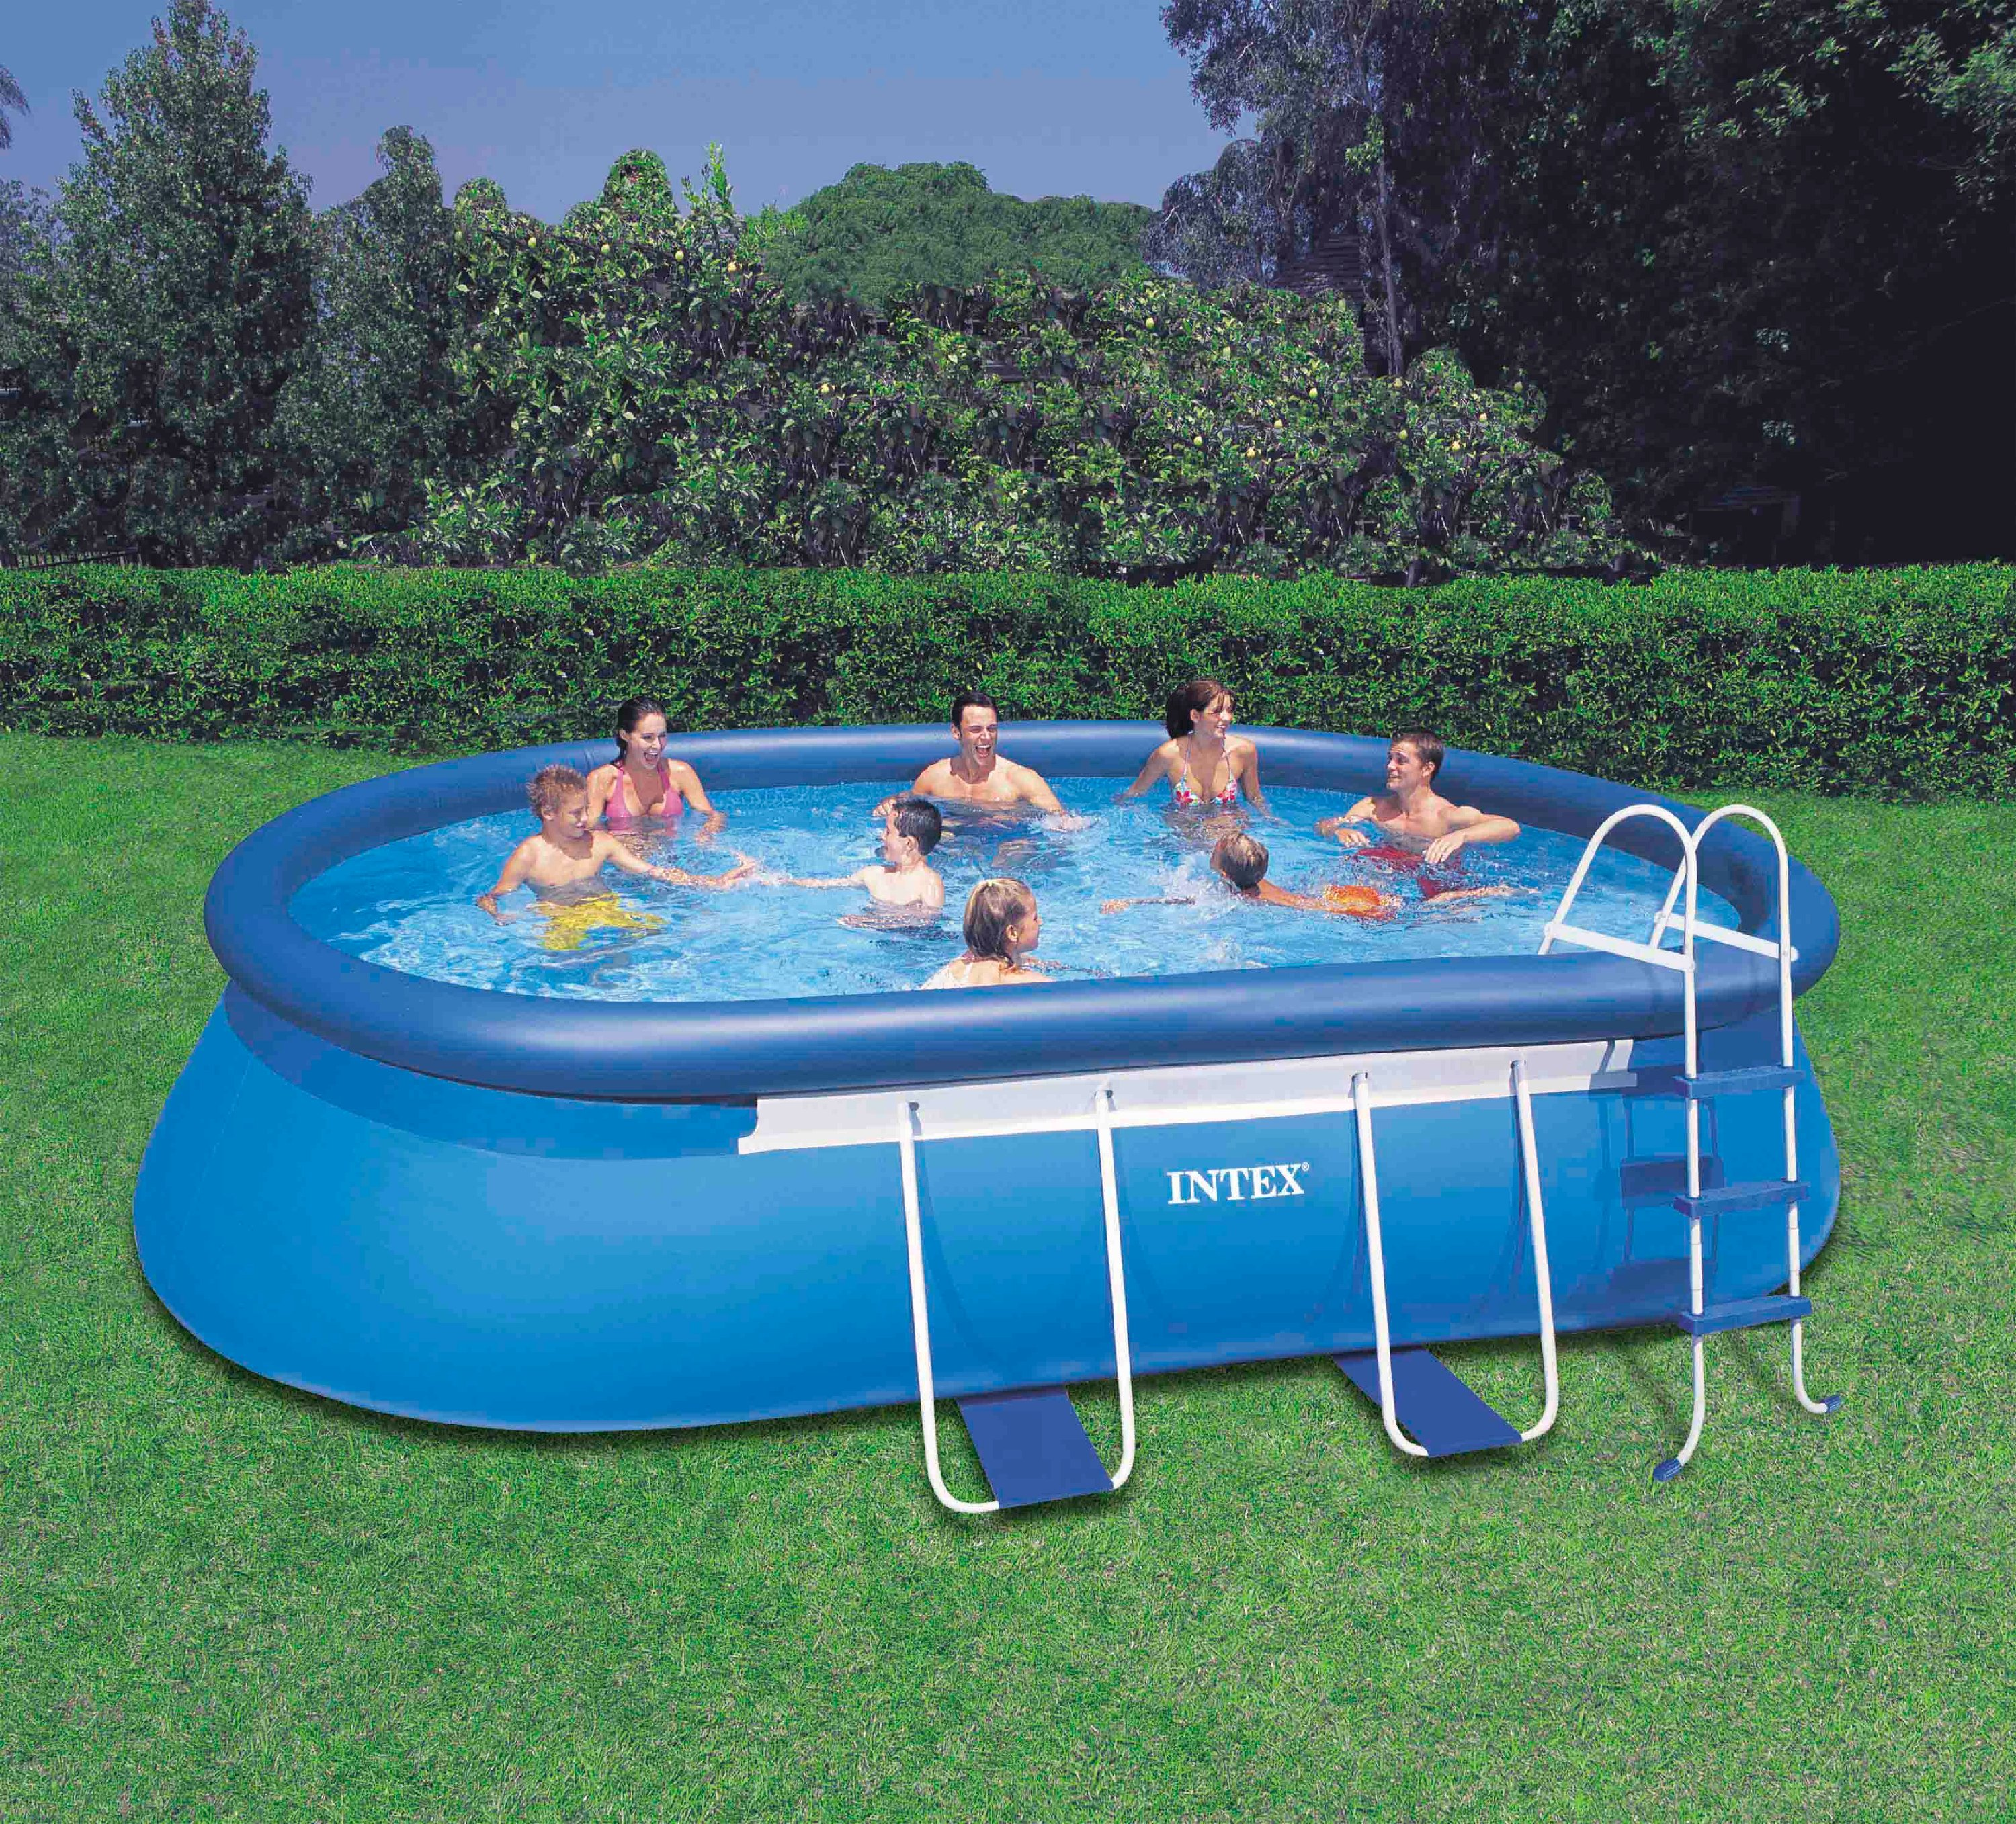 intex 18 x 10 x 42 oval frame pool set with 1000 gph filter pump 28191eh